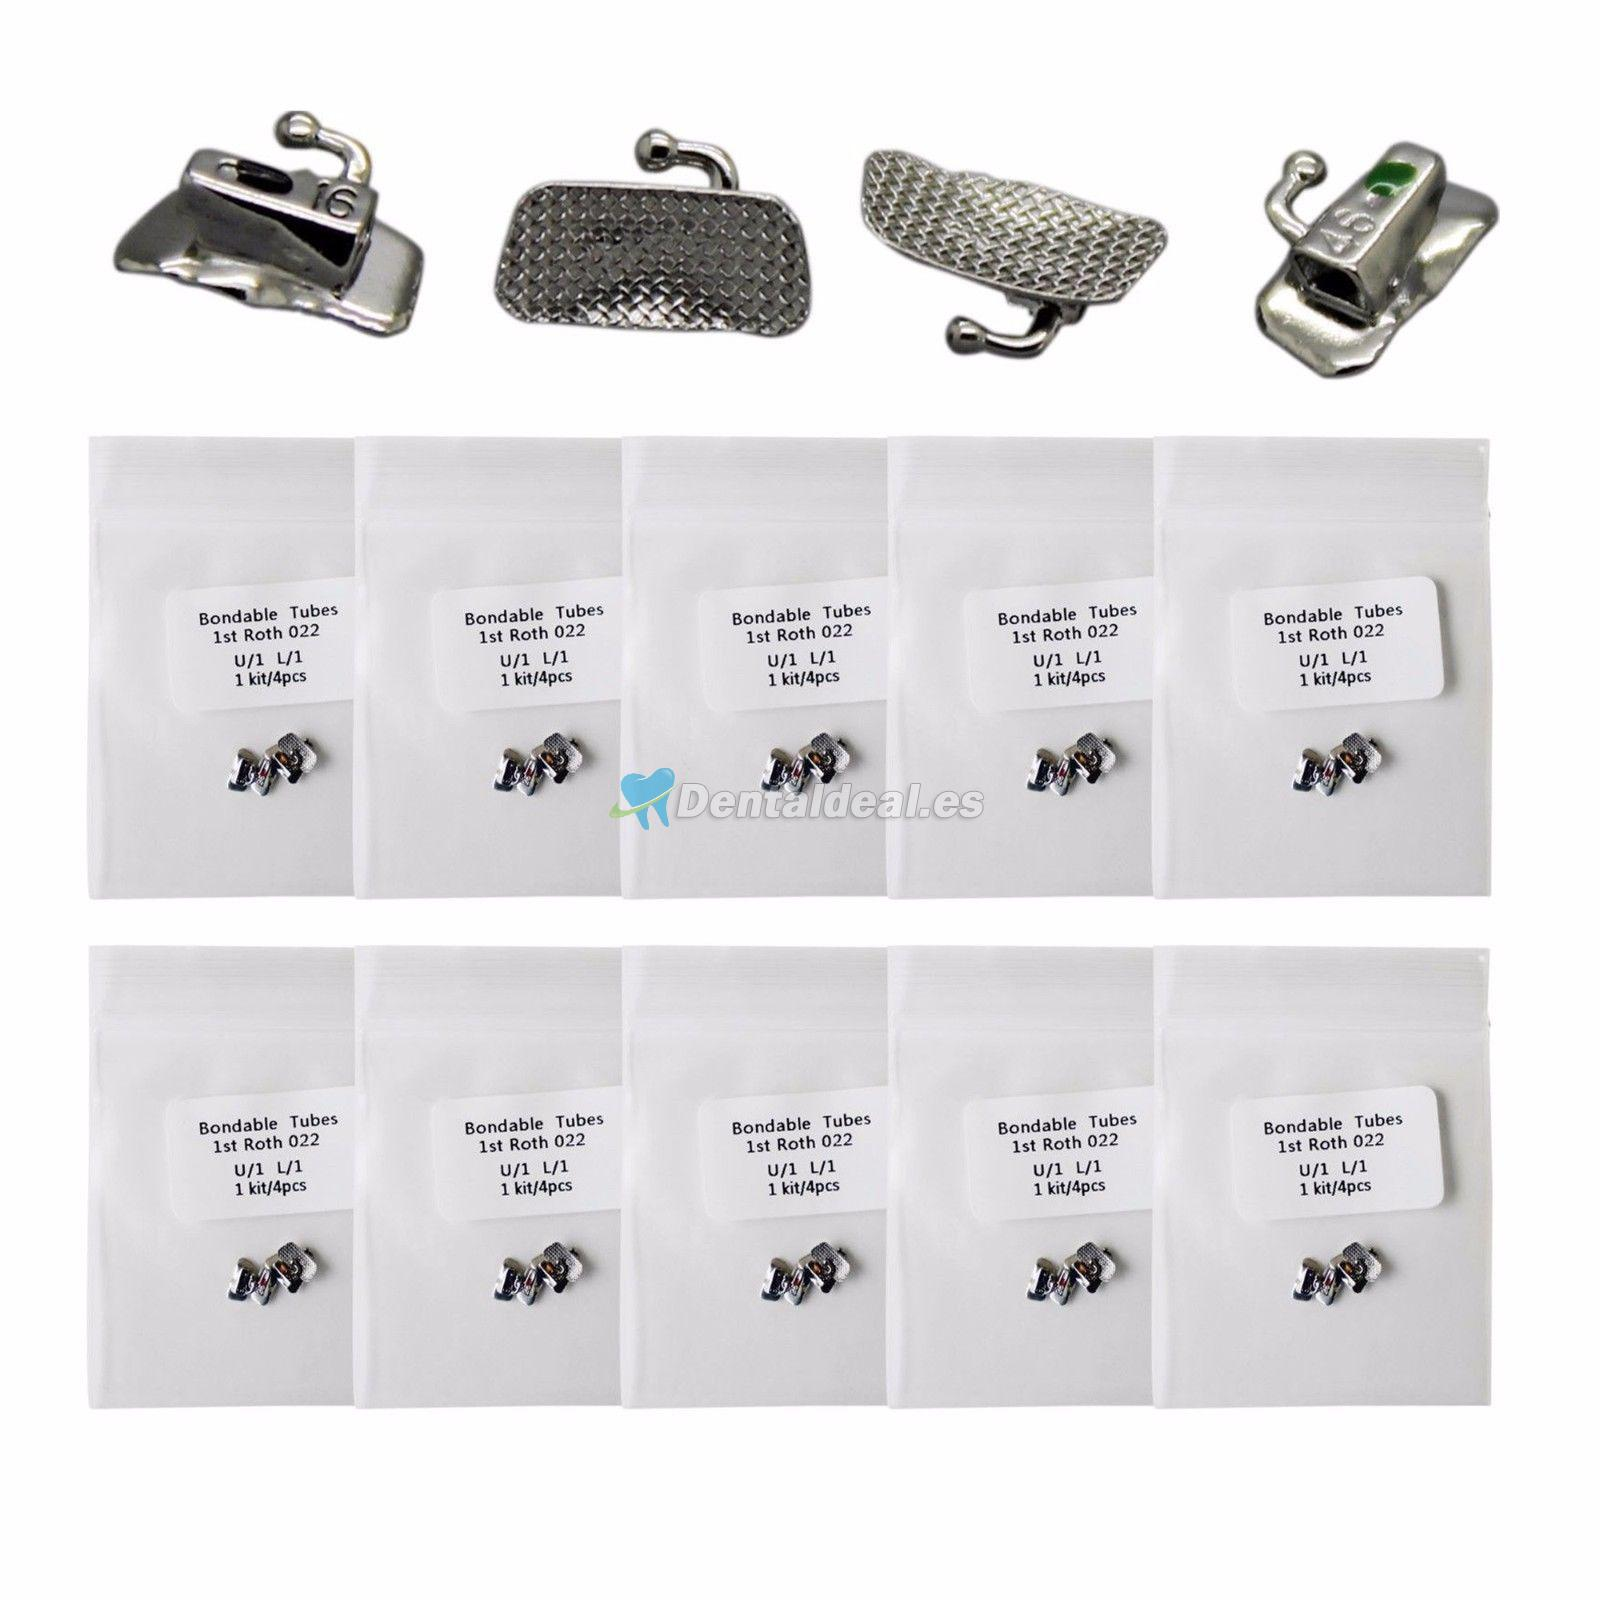 5 kits Tubos bucales de ortodoncia dentales 1st 2nd Molar Bondable MBT Roth Slot 022